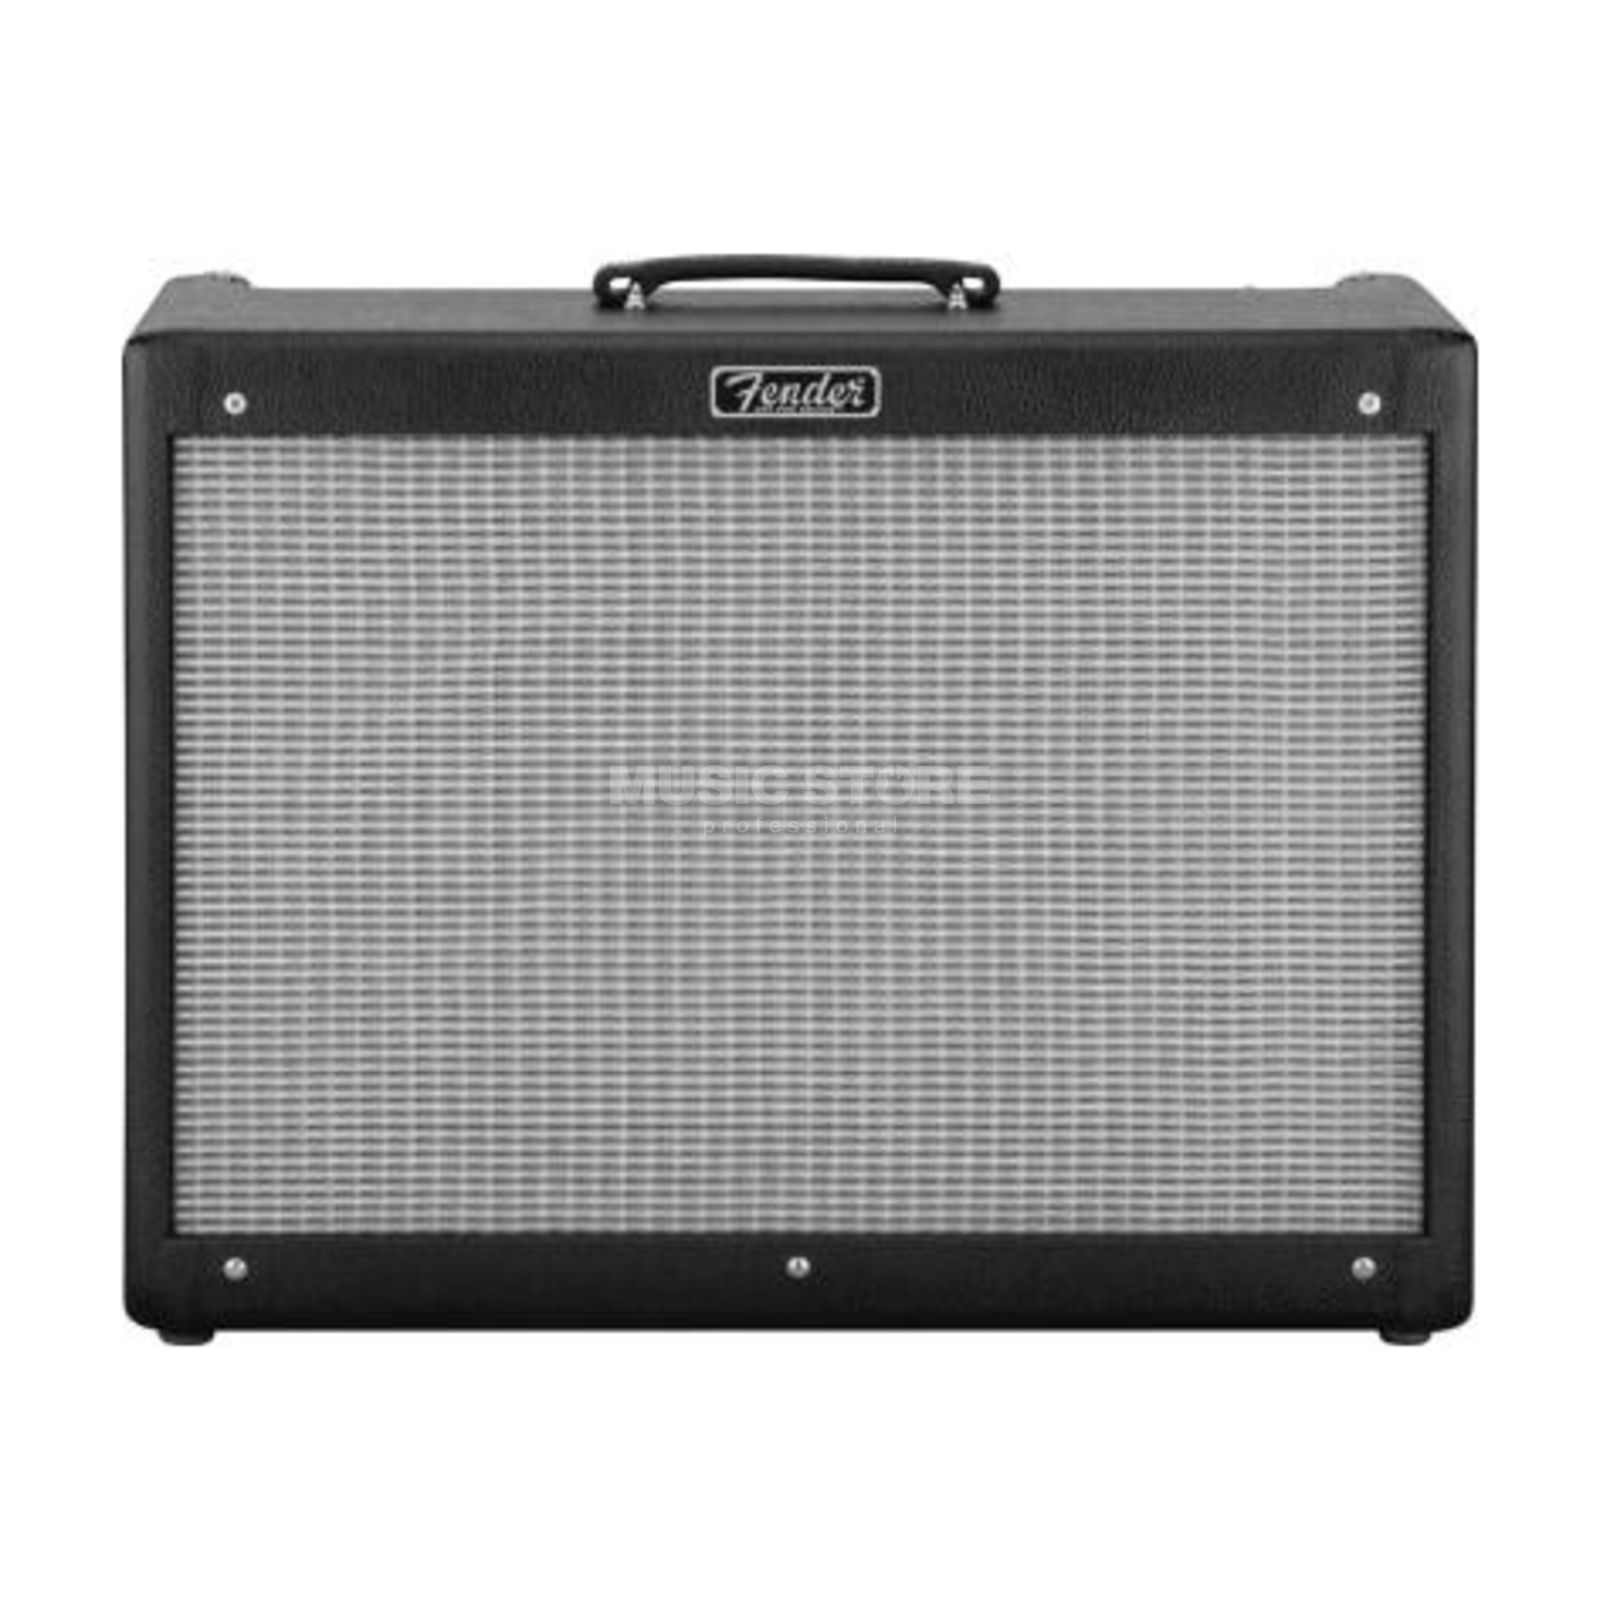 Fender Hot Rod Deluxe III Produktbild